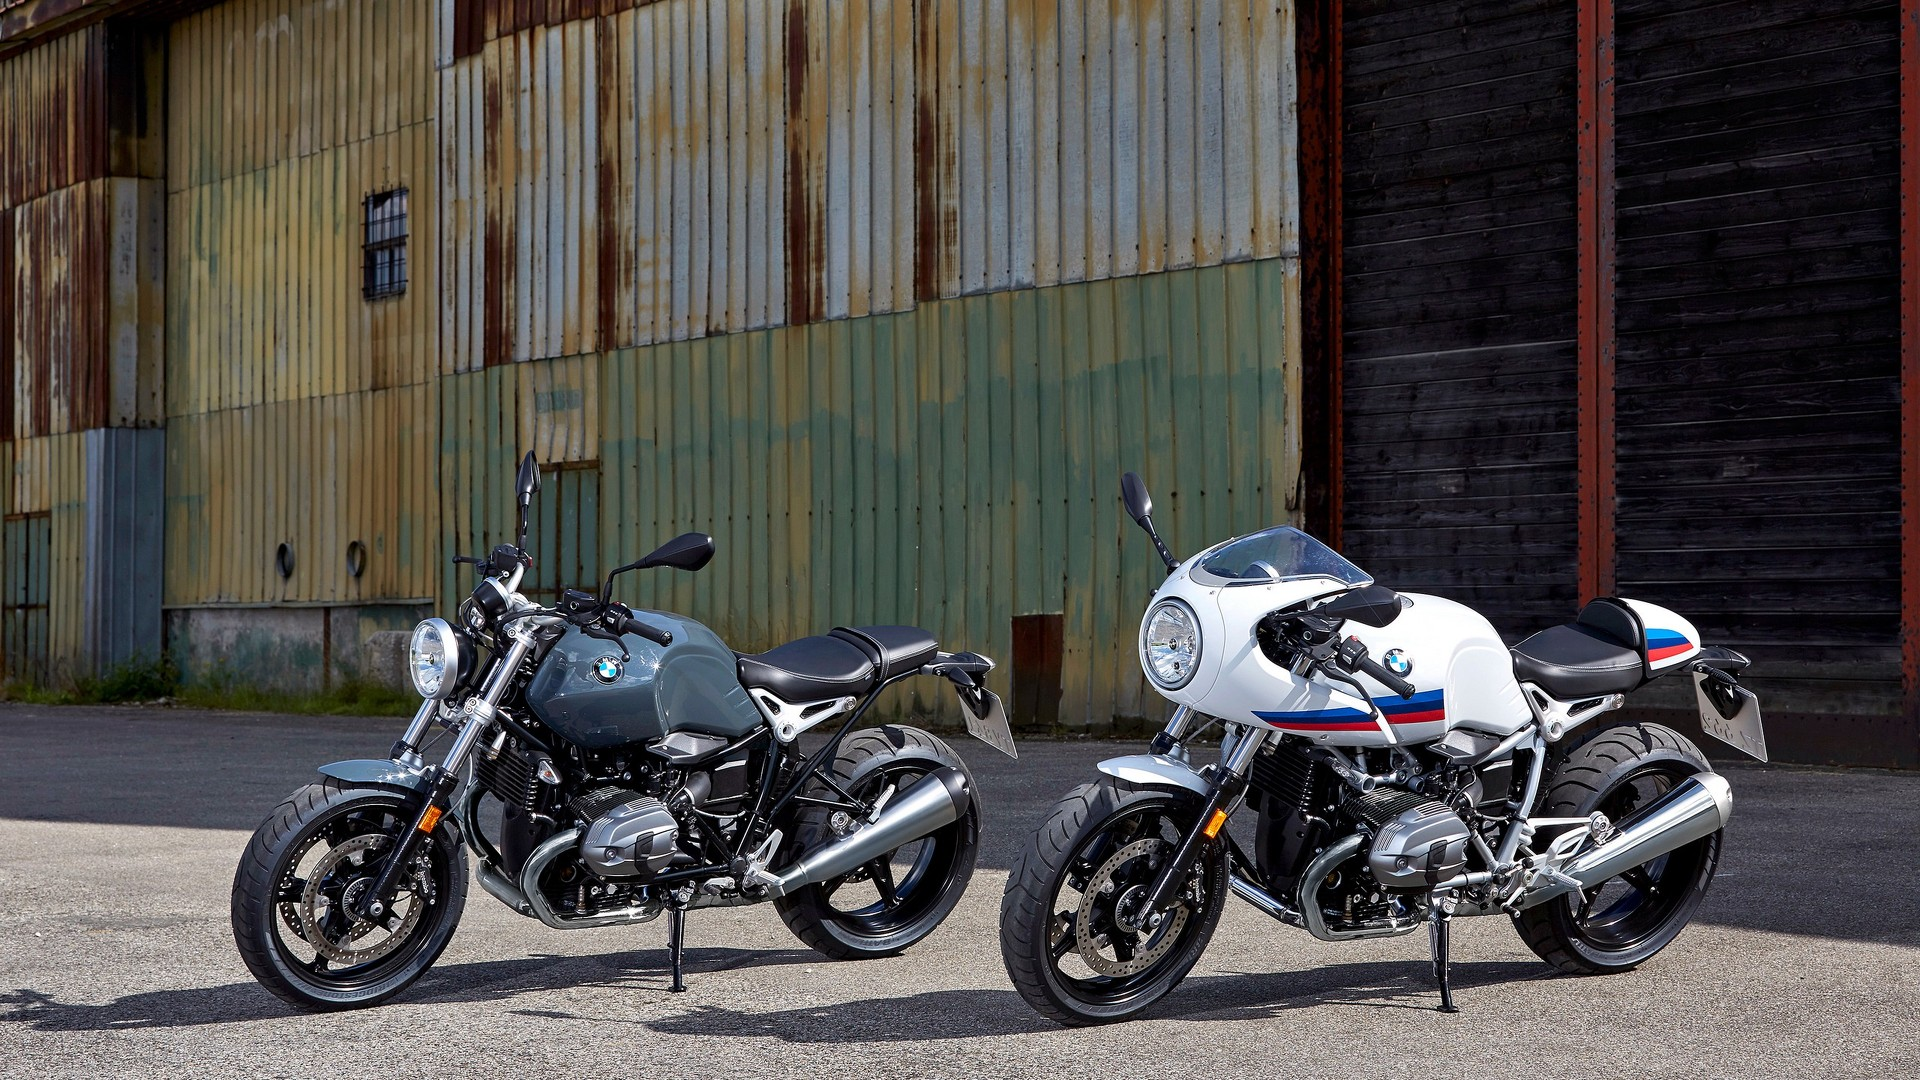 BMW R nineT series expands with Racer, Pure models